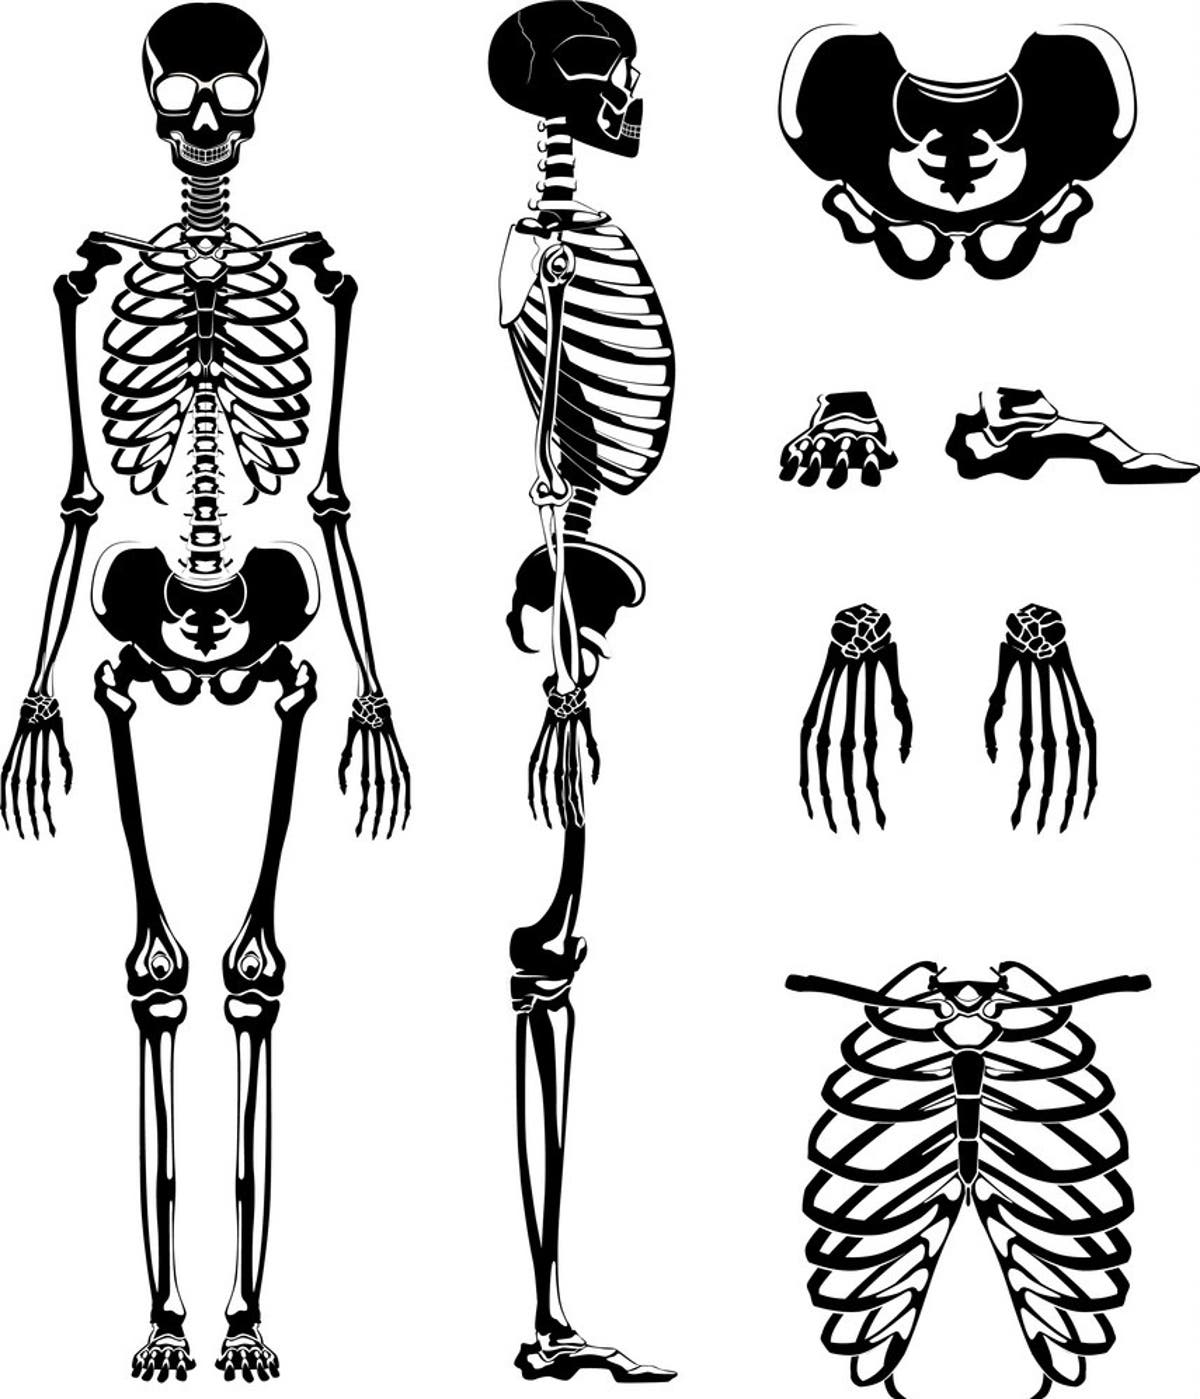 Forensic Anthropology The Identification Of Human Remains To Solve A Crime